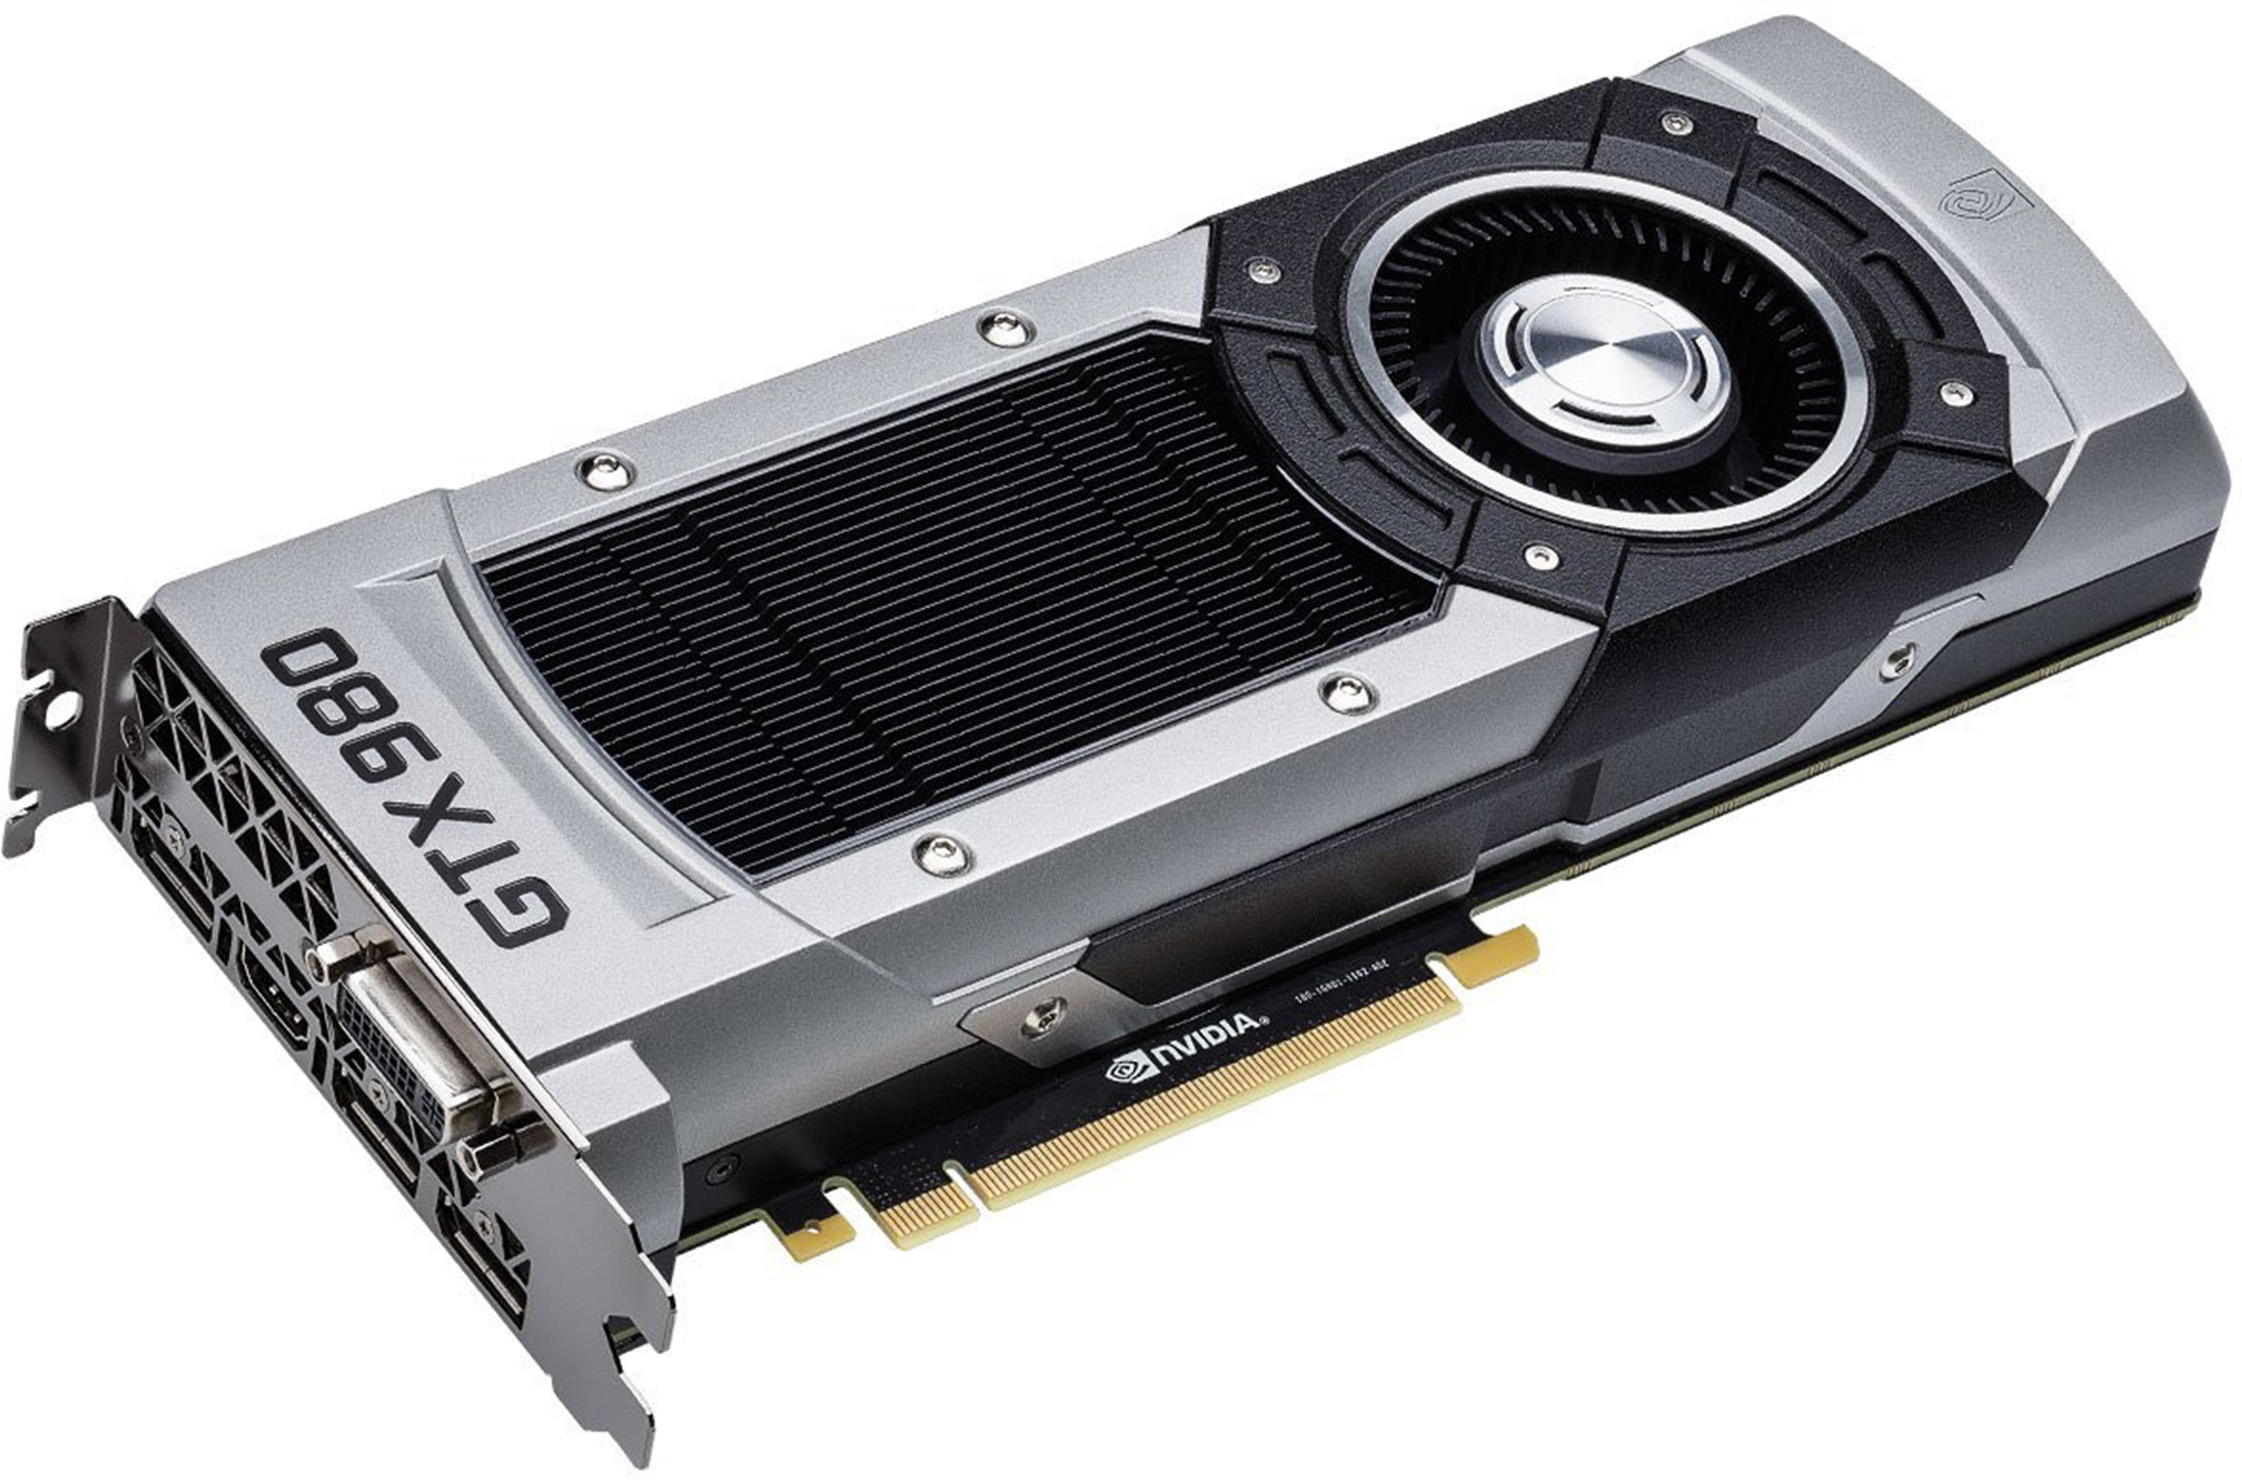 Dell NVIDIA GeForce GTX 980 4GB GDDR5 Graphics Card